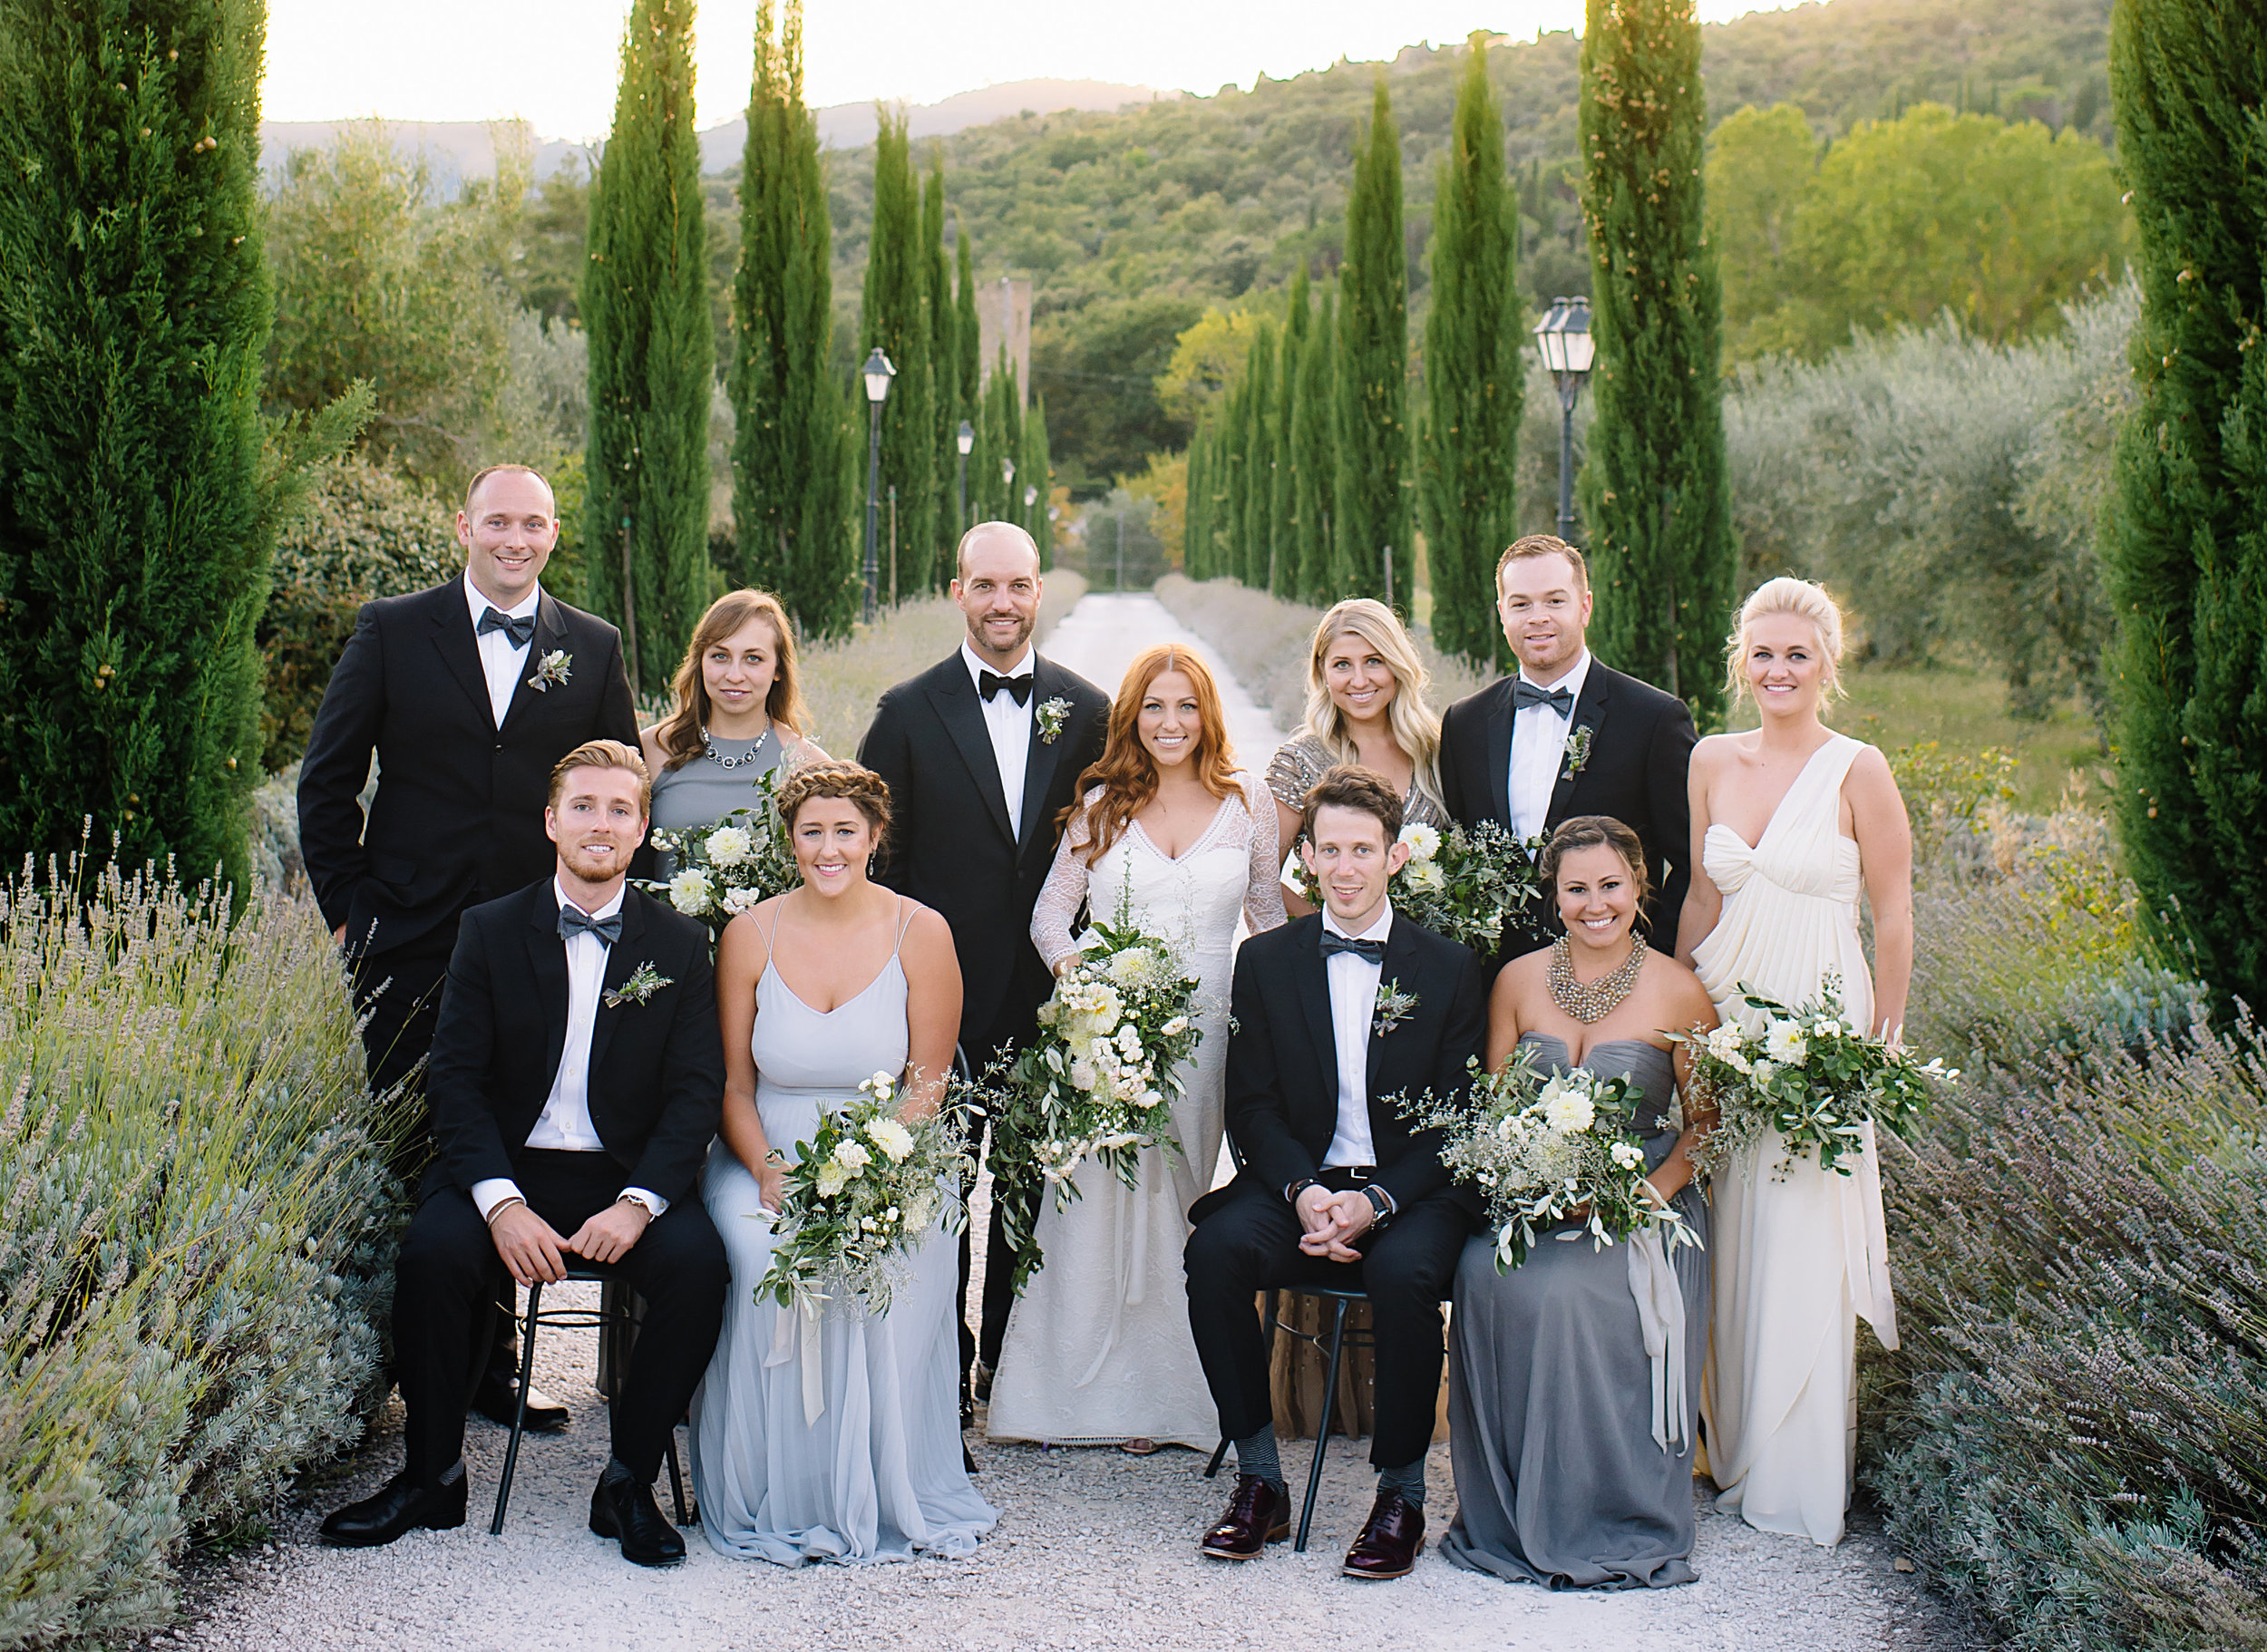 Amanda_Dumouchelle_Photography_Italy_Wedding01344.jpg